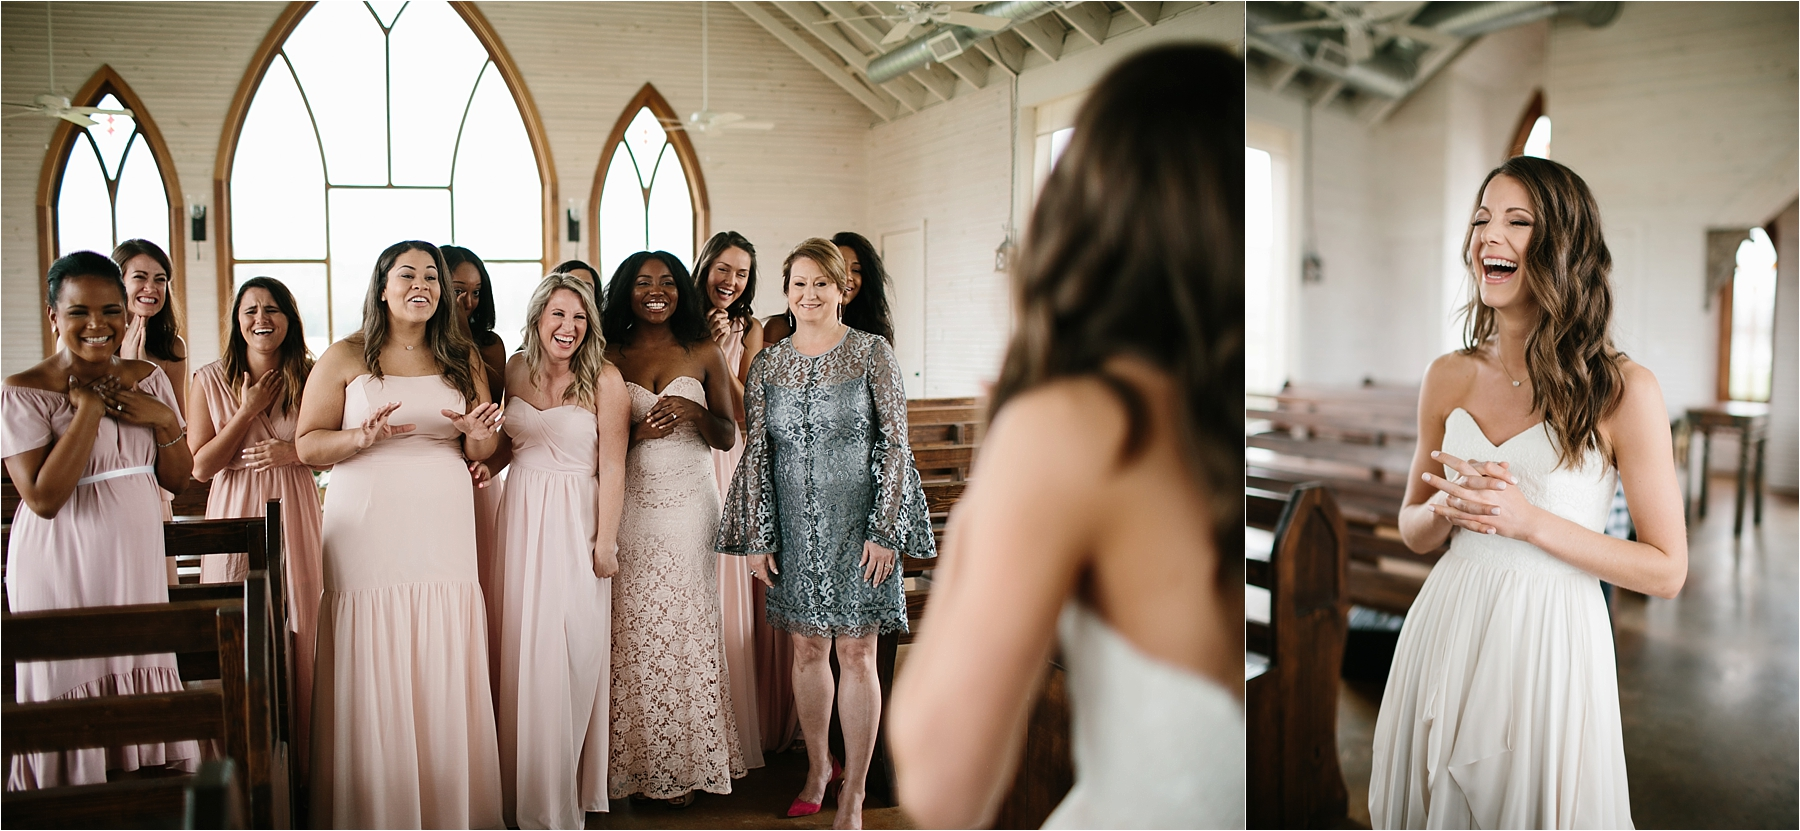 Lauren + Matt __ an intimate, emotional, blush pink, navy blue, and greenery toned wedding accents at the Brooks at Weatherford by North Texas Wedding Photographer Rachel Meagan Photography017